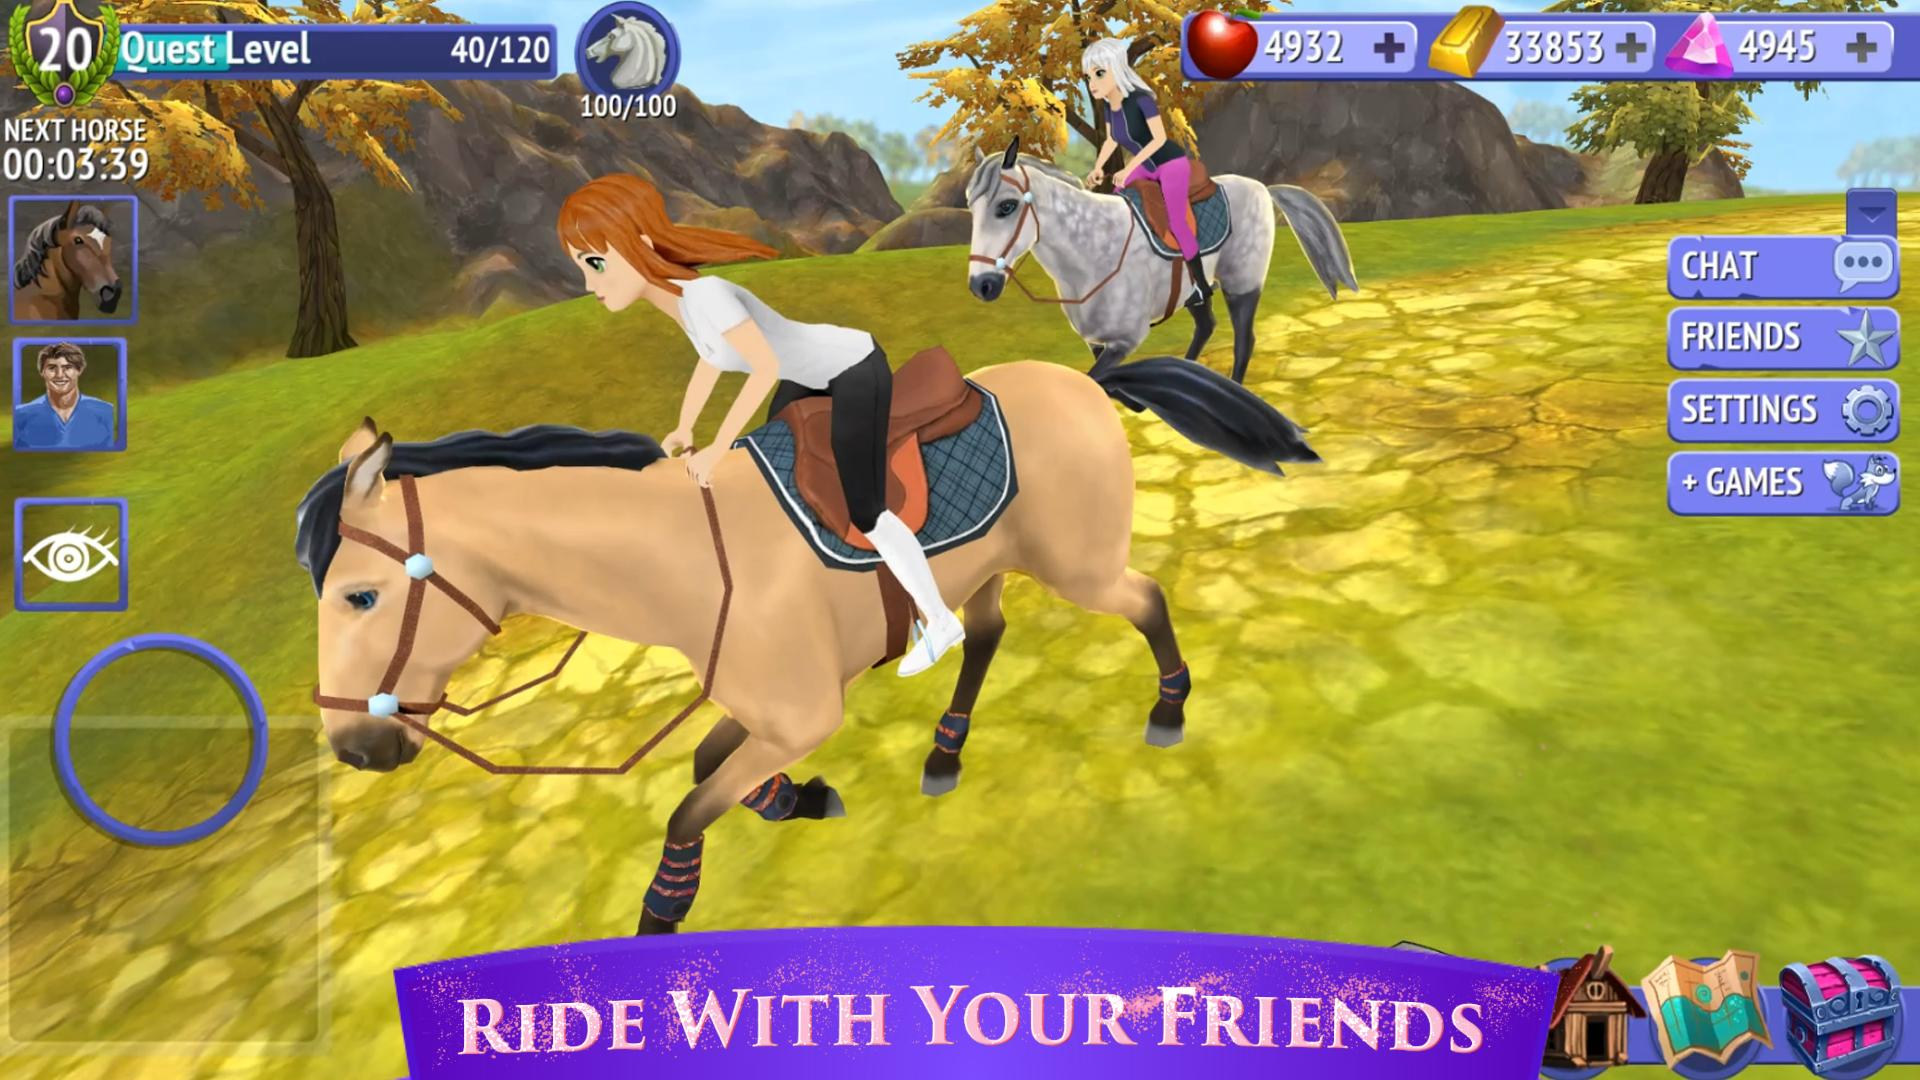 Horse Riding Tales - Ride With Friends 780 Screenshot 20